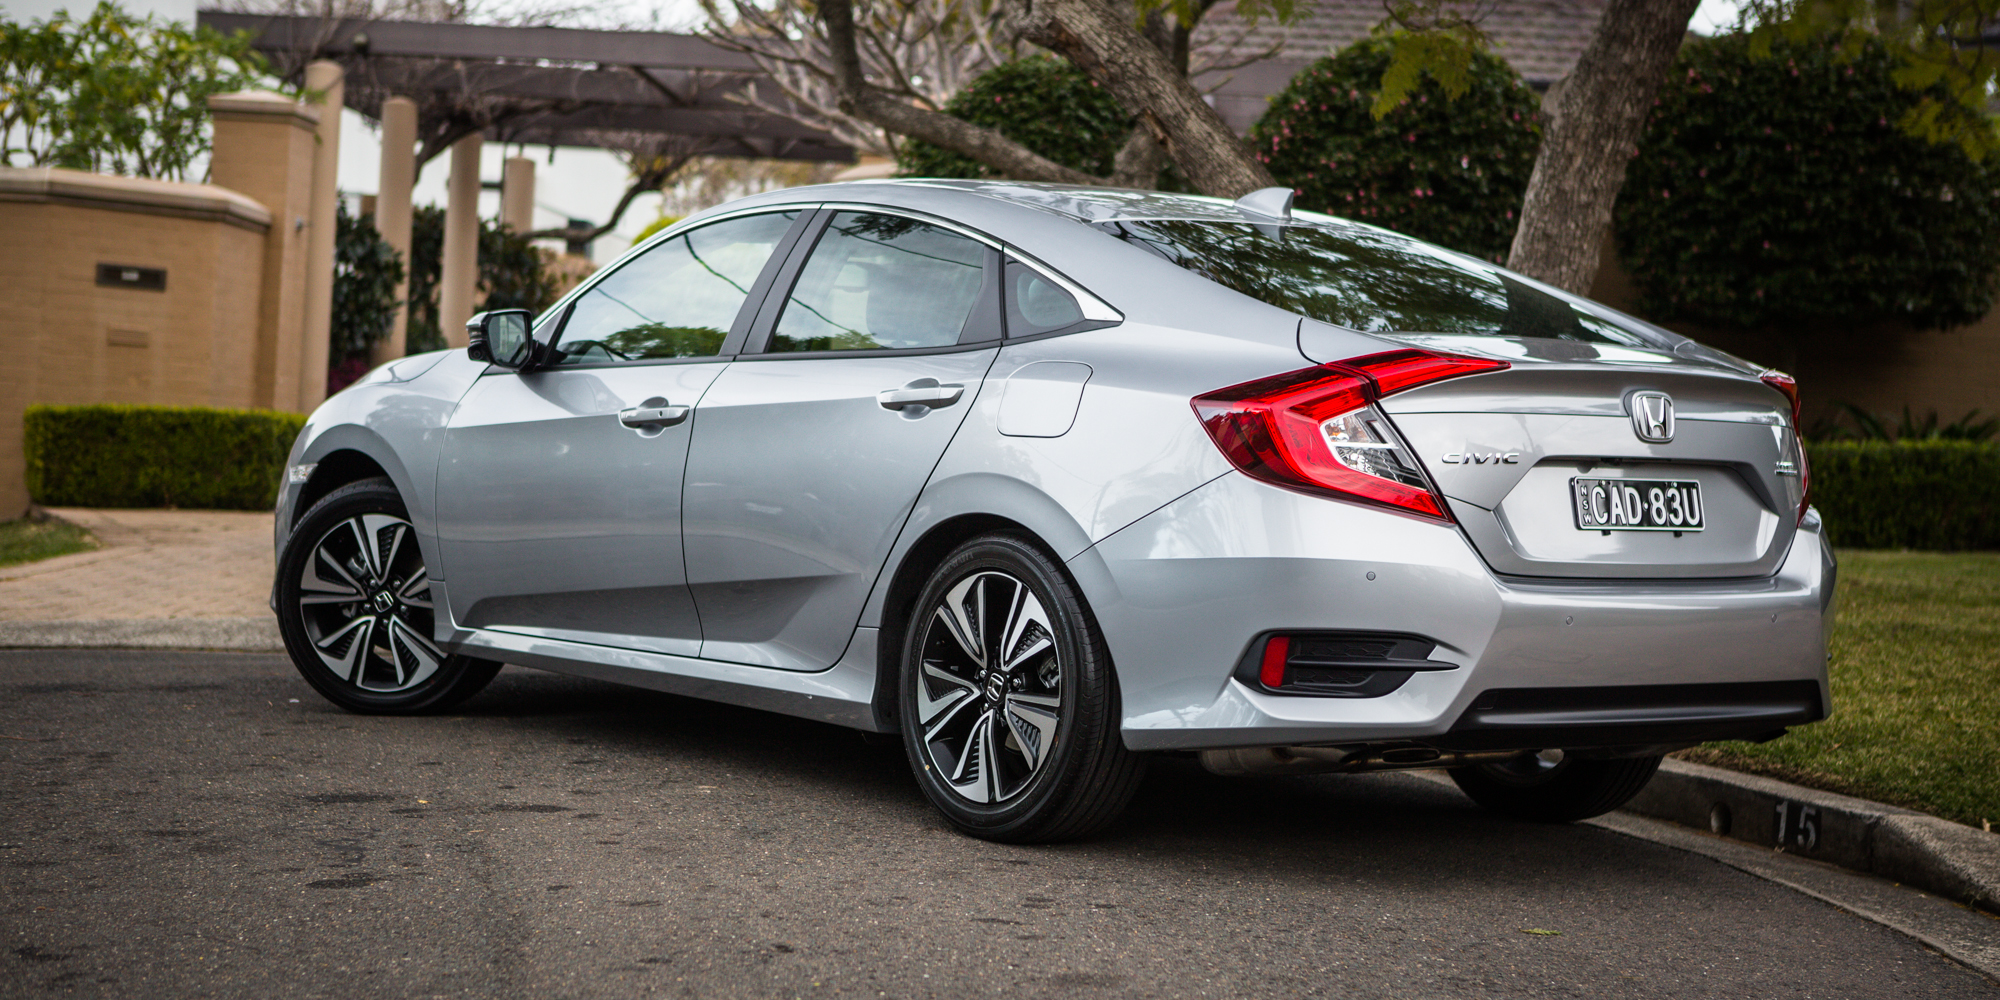 2016 Honda Civic Vti Lx Review Caradvice